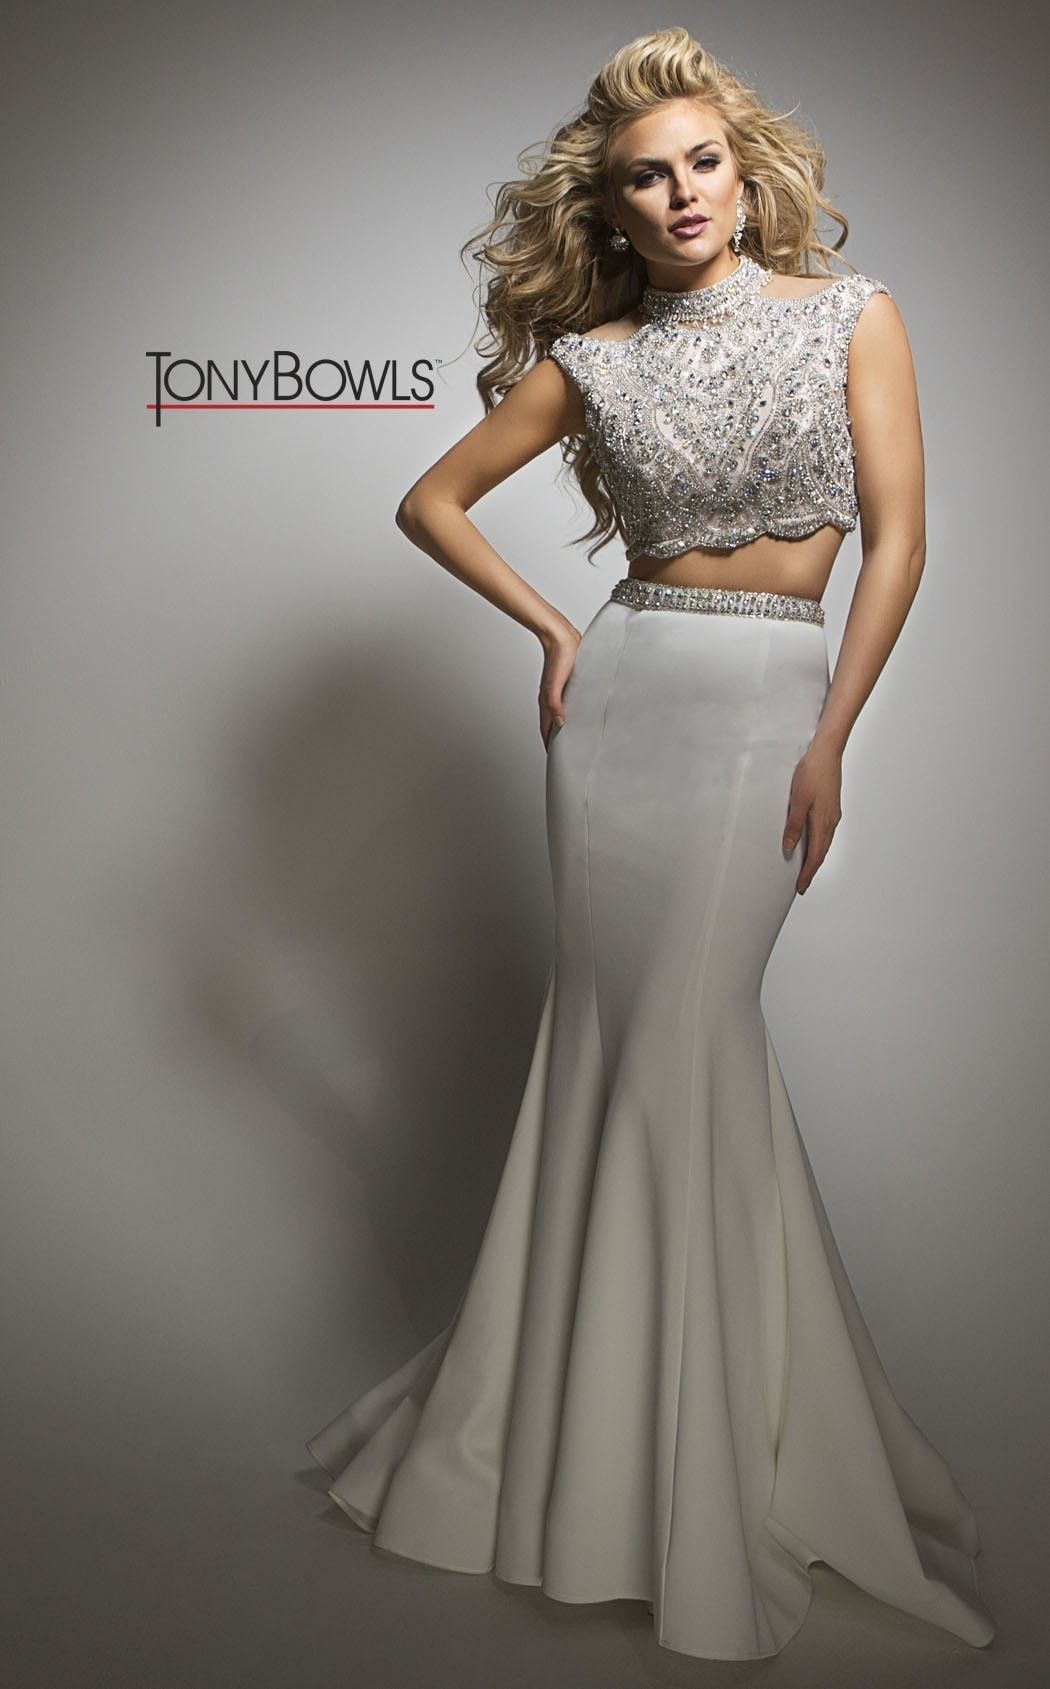 Tony Bowls White Beaded Gown | Products | Pinterest | Tony bowls ...